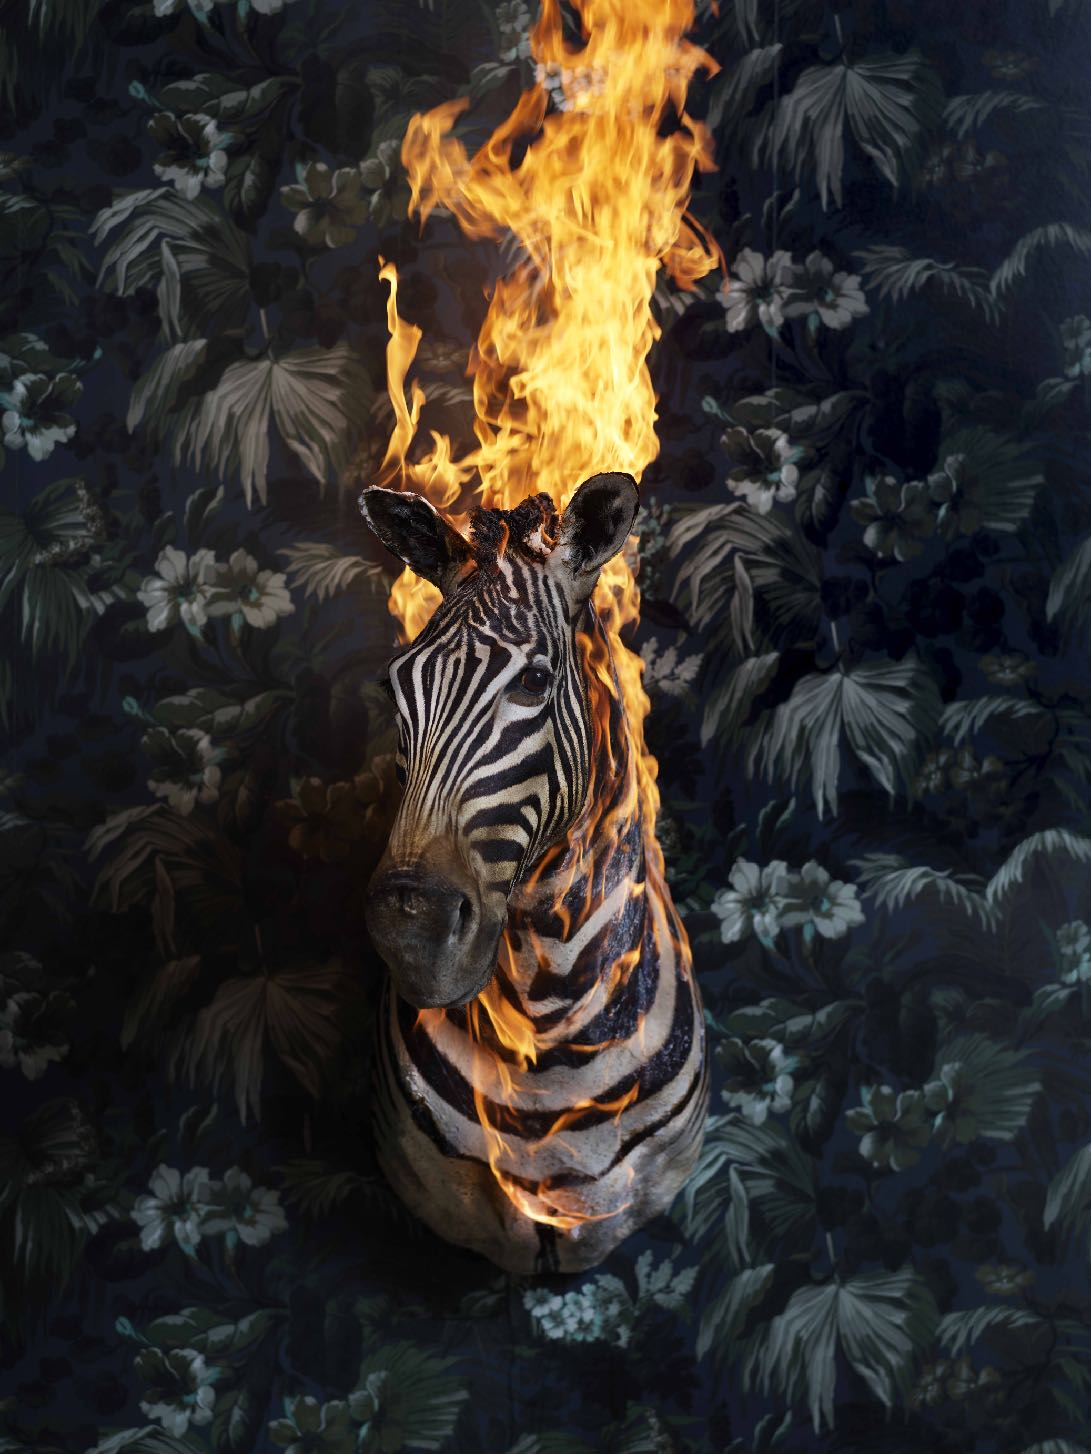 VIEWINGROOM #9 - CHRISTIAN HOUGE - 'A Norwegian artist and nature lover sets old trophy animals on fire and gives them a last breath of life before they are set free. His mission is to spark up a dialogue on our relationship to nature, and ultimately, to ourselves.'Christian Houges exhibition Residence of Impermanence at Fotografiska is beautiful and thought provoking.LEARN MORE